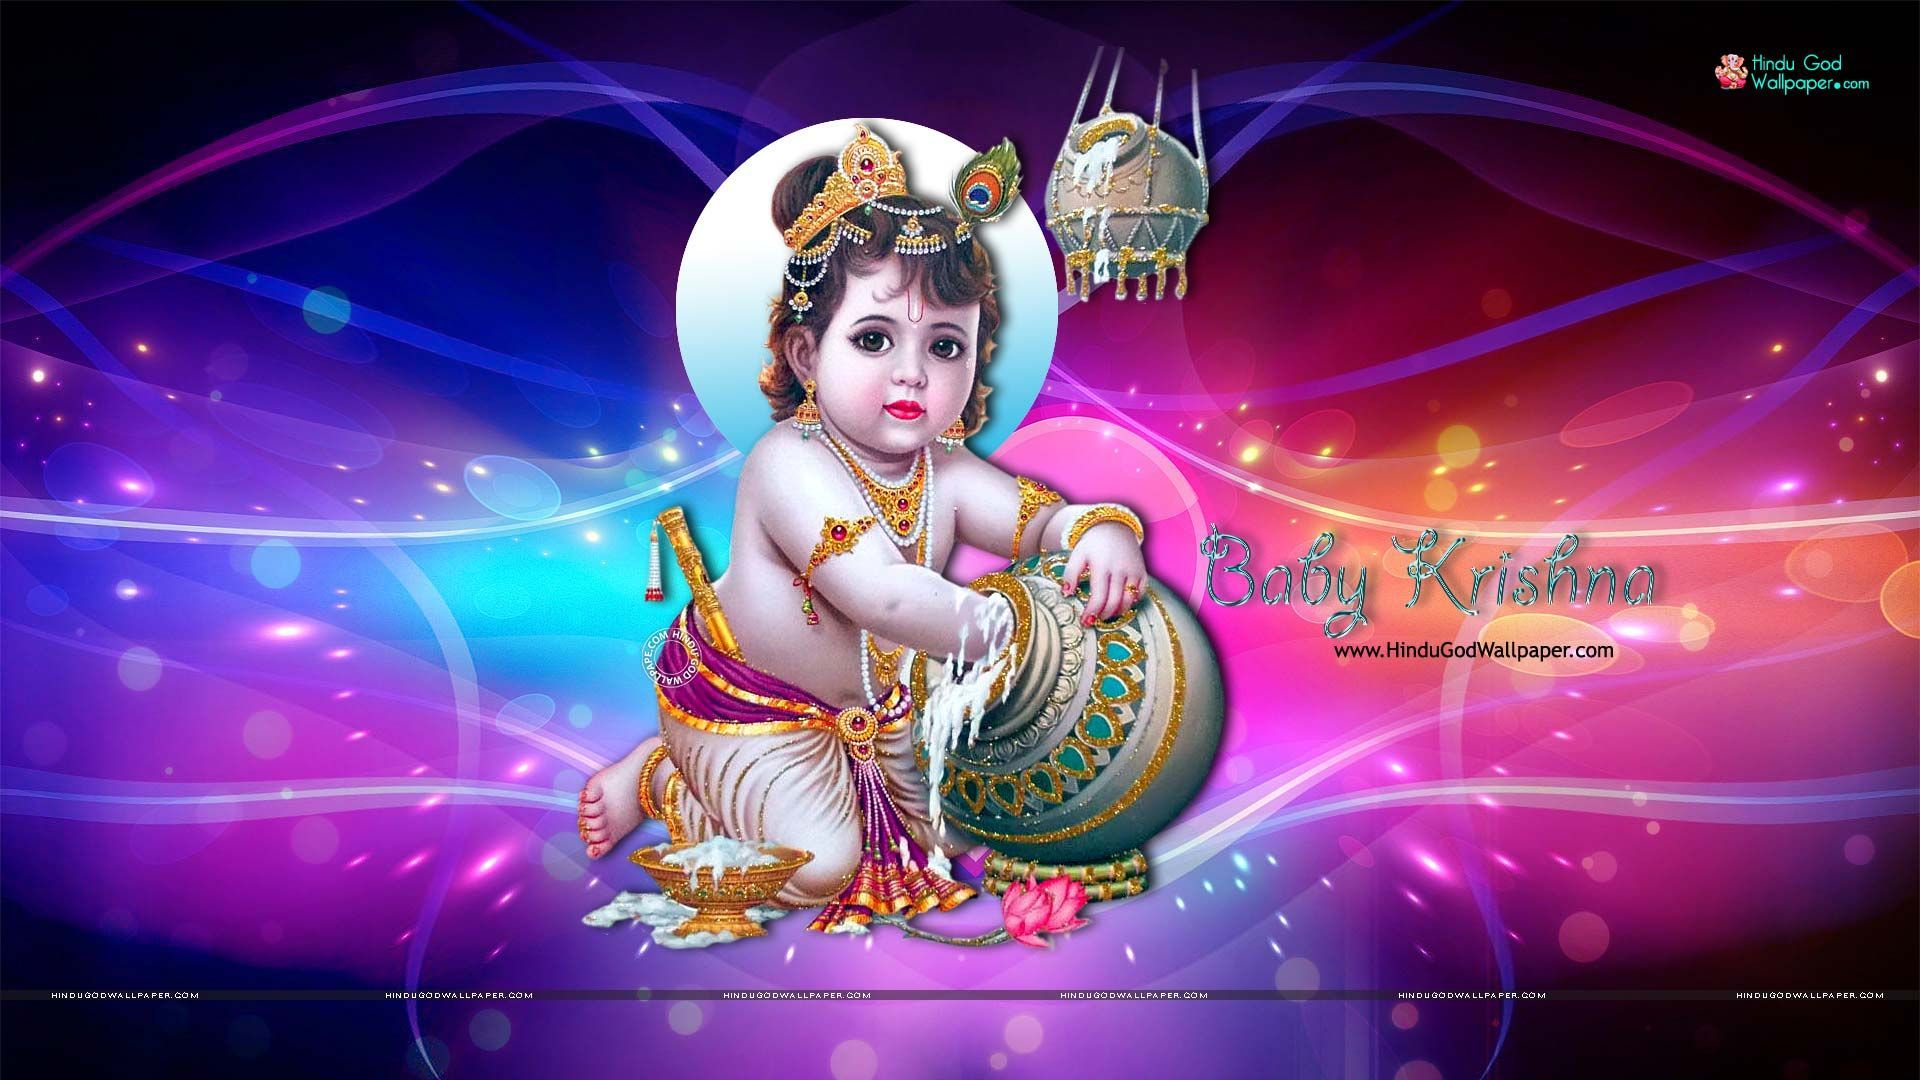 Baby Krishna Hd Wallpapers Free Download With Full Size Lord Krishna Hd Photos Baby Krishna Lord Krishna Hd Wallpaper Lord Krishna Wallpapers